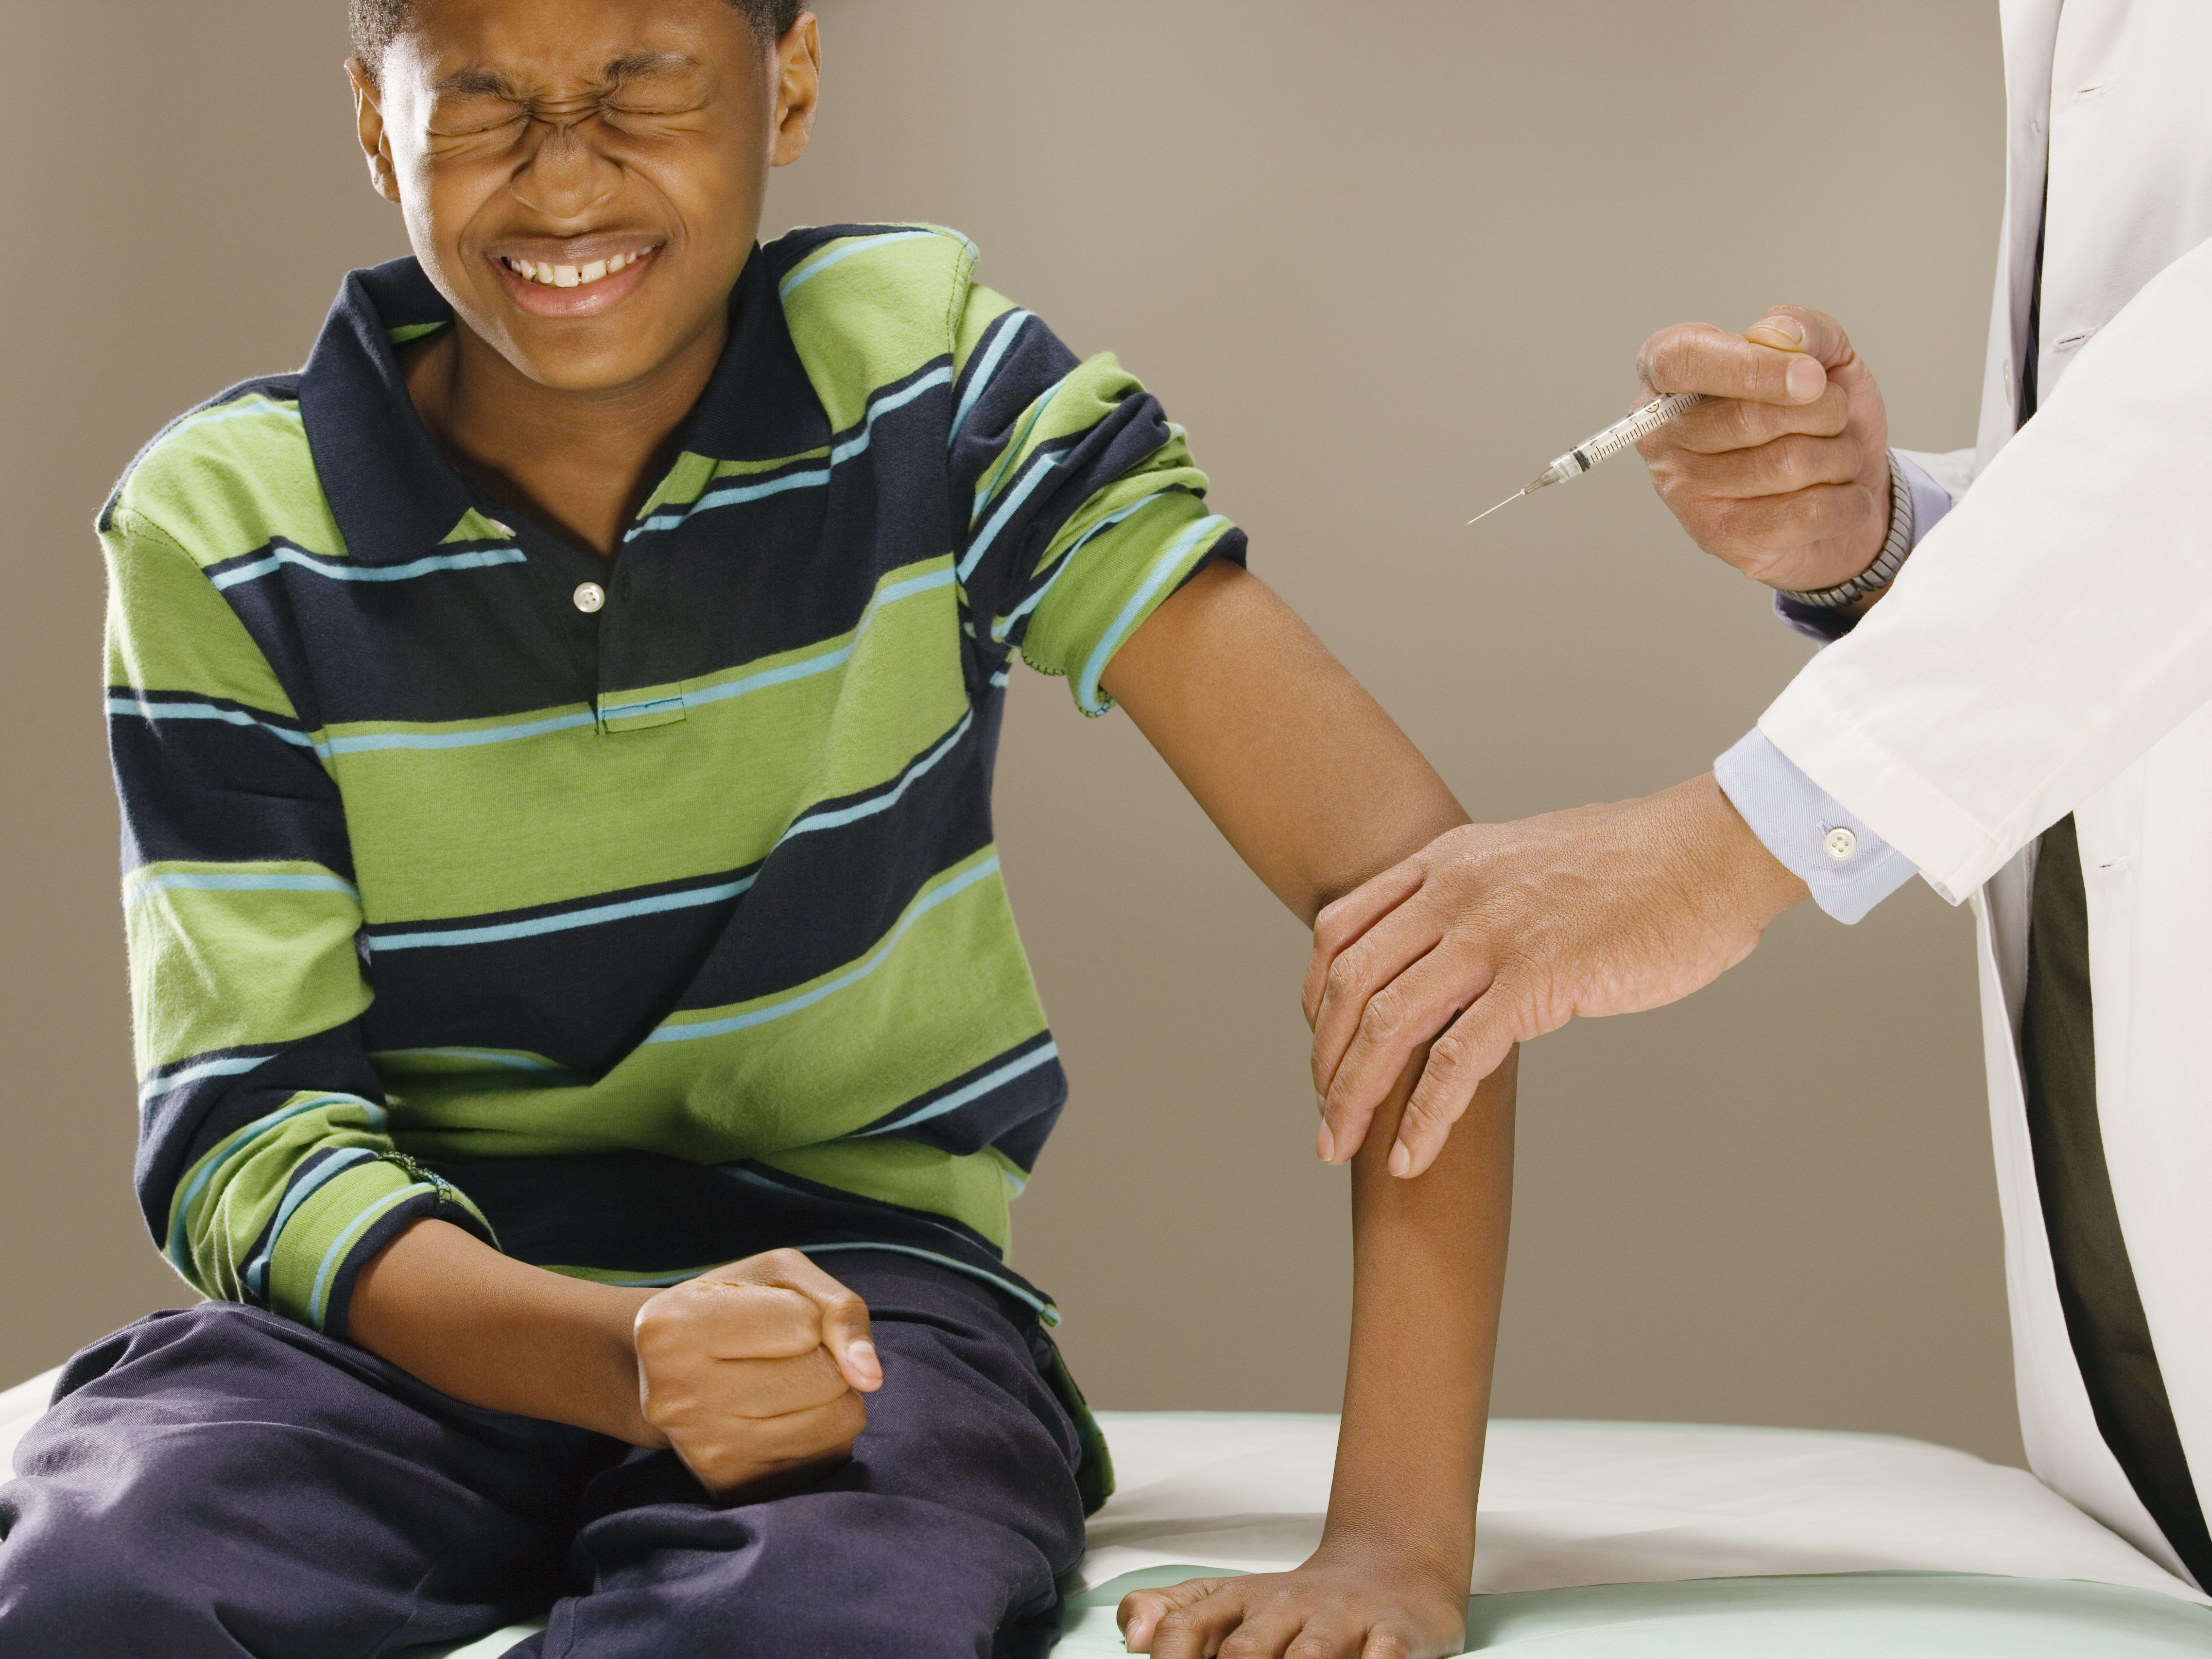 hpv vaccine side effects arm pain